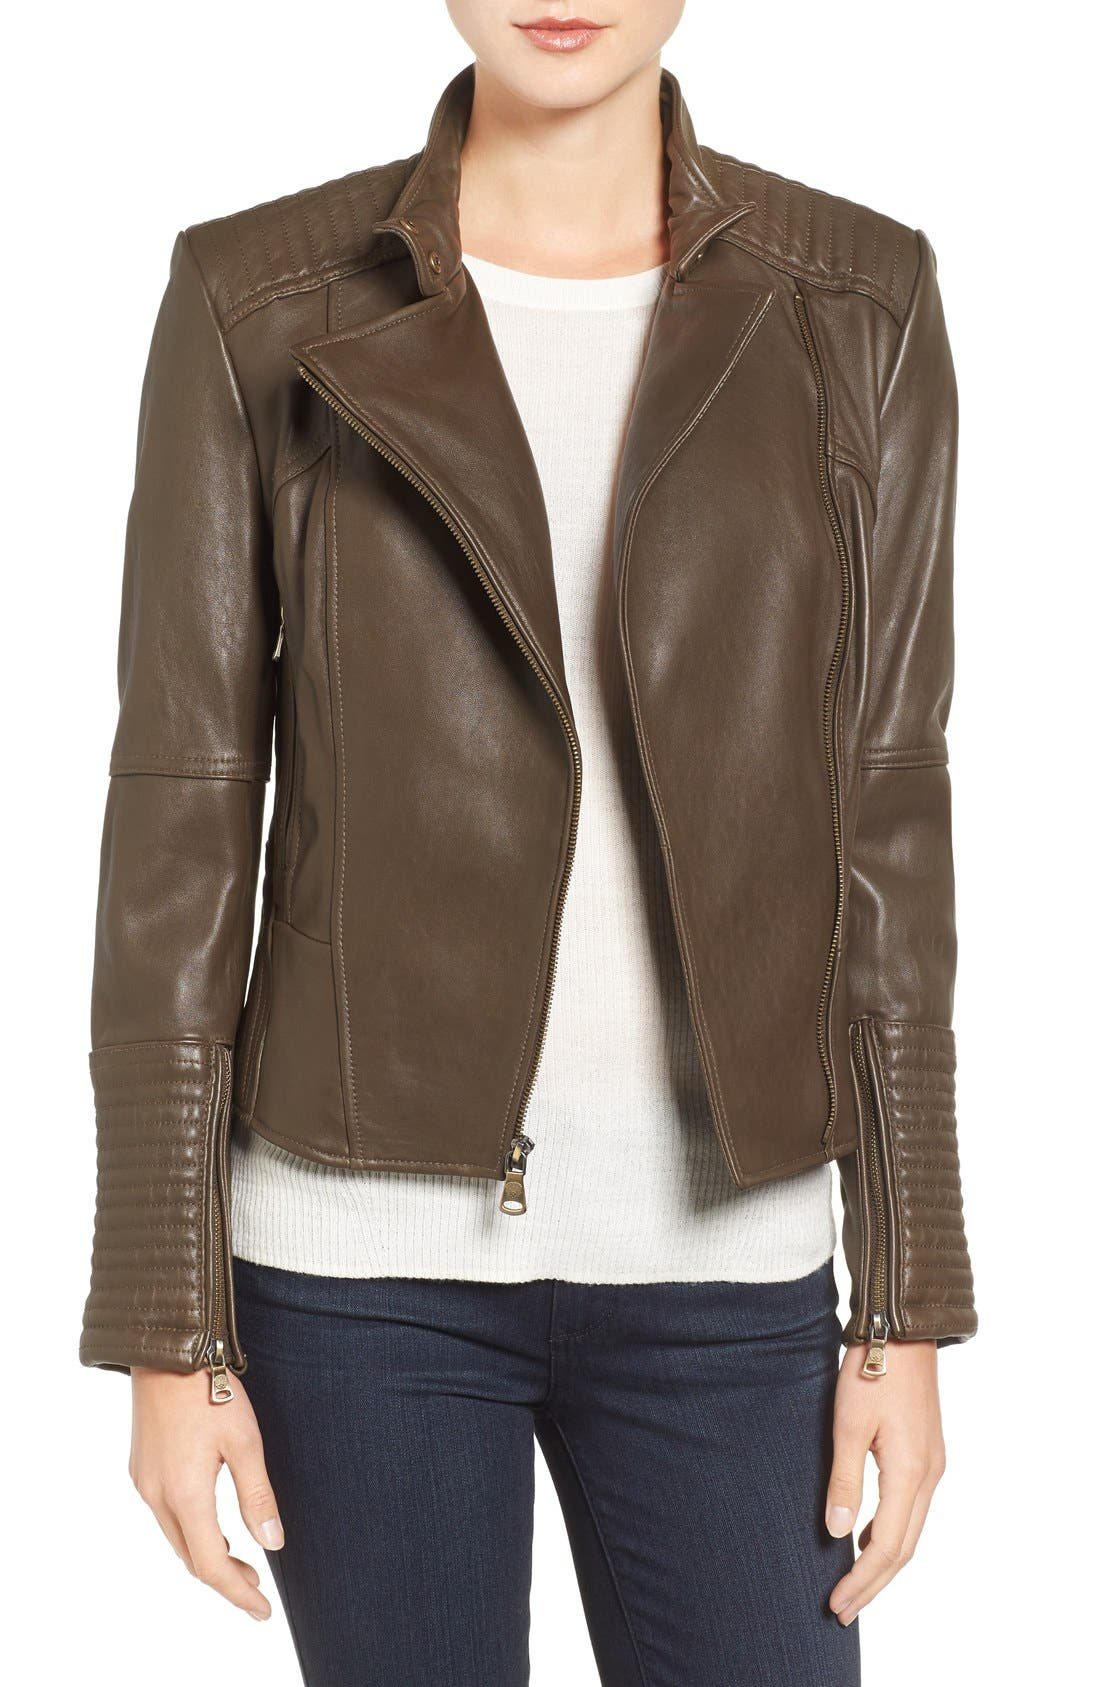 Alternate Image 1 Selected - Vince Camuto Asymmetrical Leather Moto Jacket (Online Only)